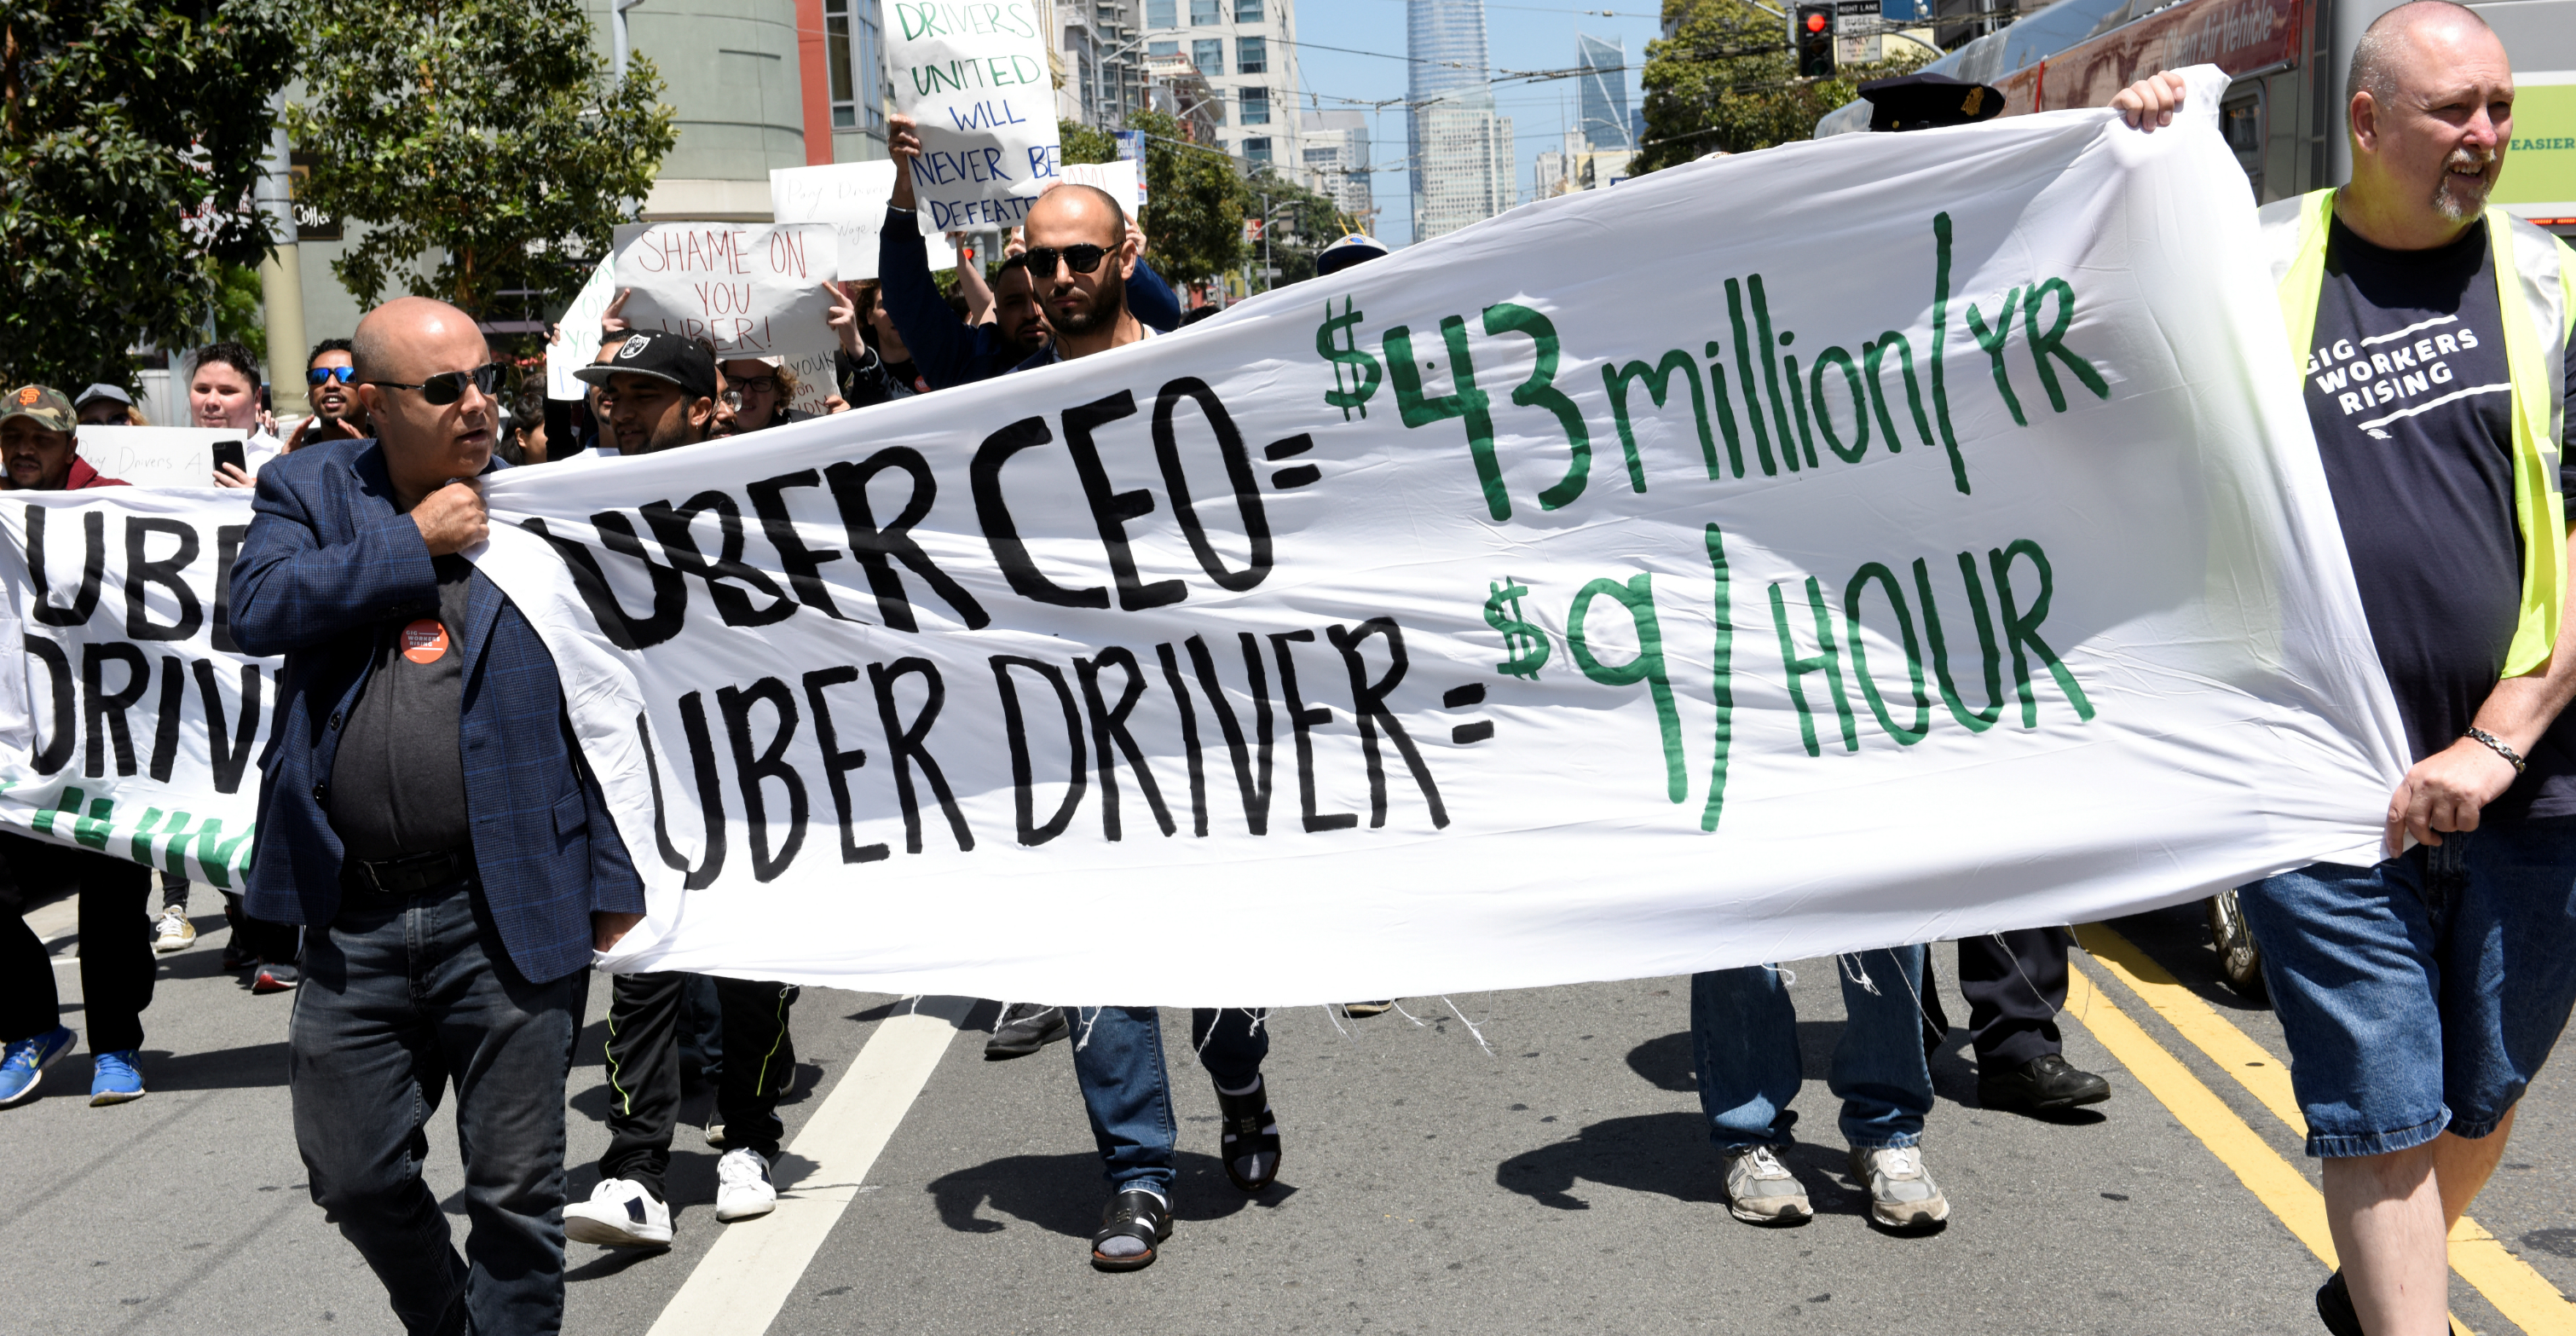 Uber and other ride-hailing firms have faced dozens of lawsuits accusing them of misclassifying workers as independent contractors under federal and state wage laws. Photo: Reuters